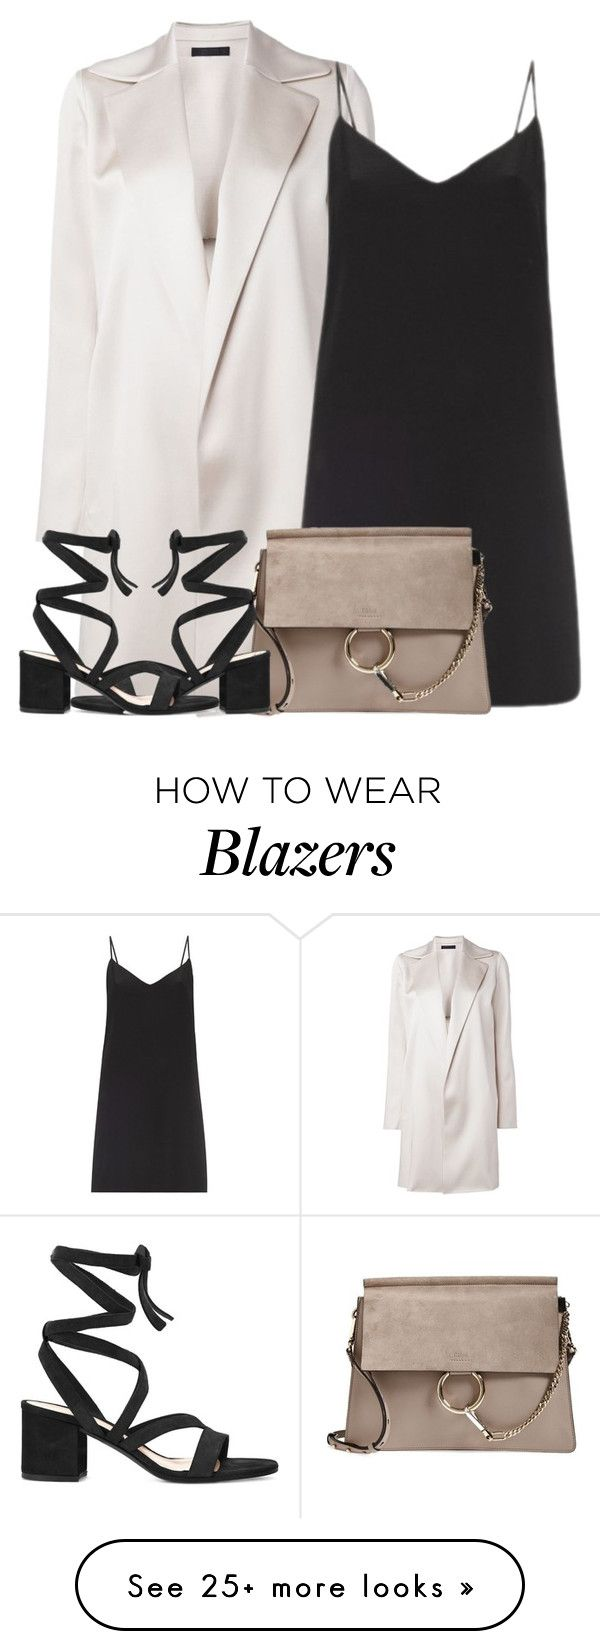 """Untitled #4247"" by maddie1128 on Polyvore featuring The Row, Raey, Chloé and Gianvito Rossi"